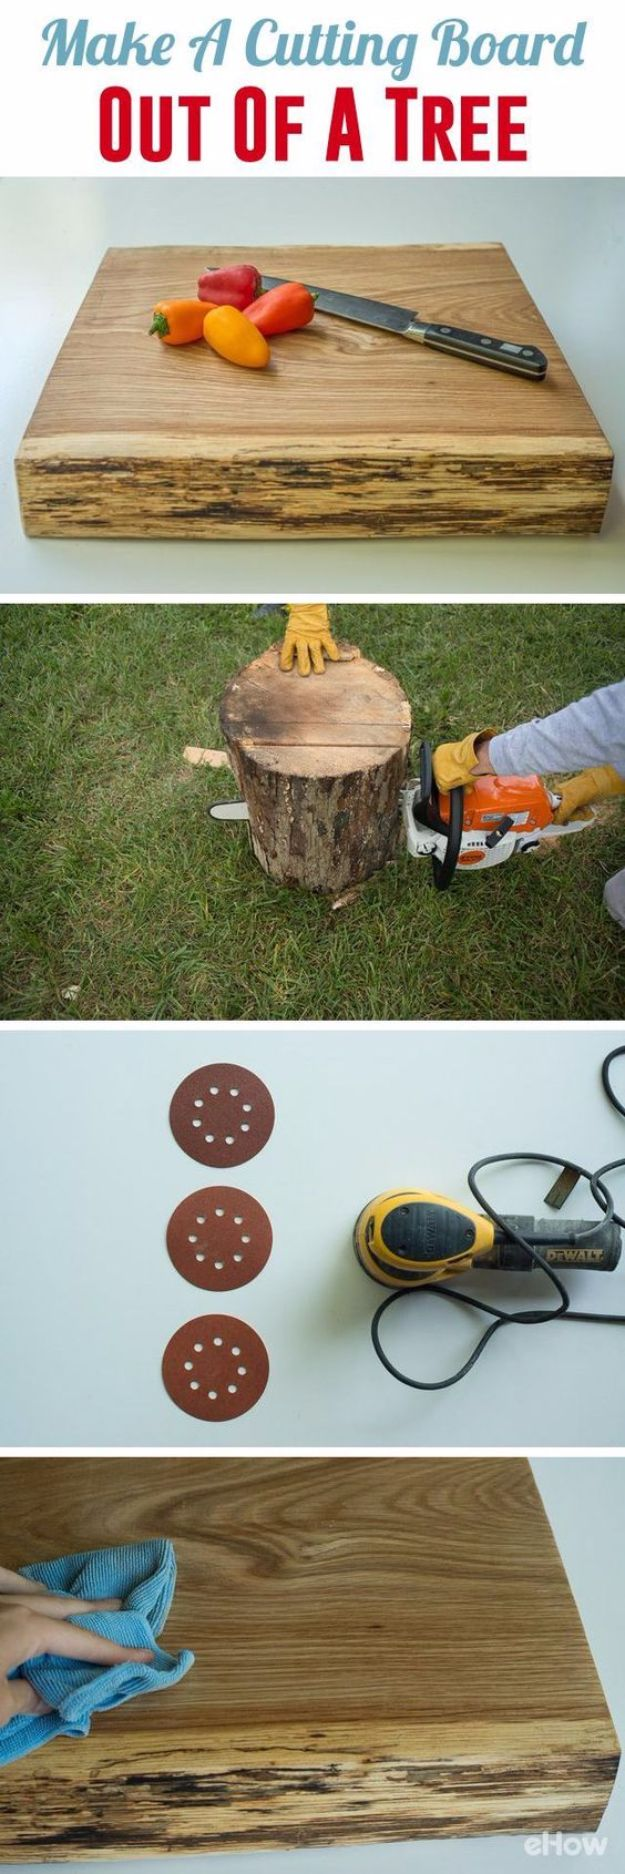 Cool Woodworking Tips - Make a Cutting Board Out of a Tree - Easy Woodworking Ideas, Woodworking Tips and Tricks, Woodworking Tips For Beginners, Basic Guide For Woodworking - Refinishing Wood, Sanding and Staining, Cleaning Wood and Upcycling Pallets - Tips for Wooden Craft Projects http://diyjoy.com/diy-woodworking-ideas